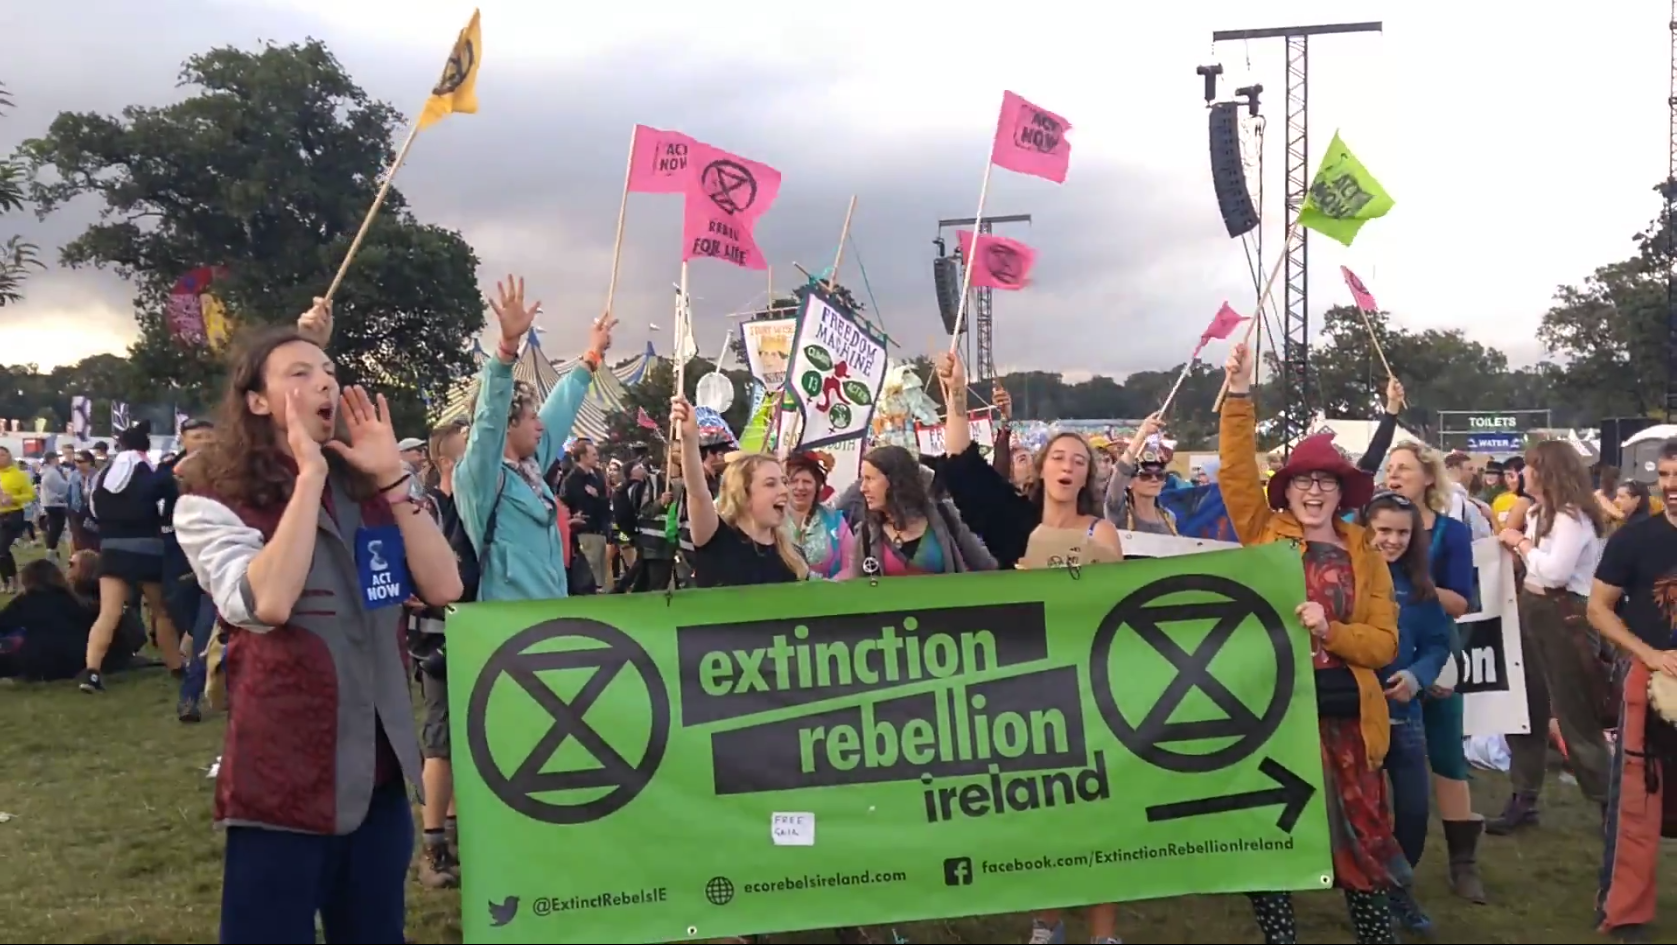 XR Parade: Extinction Rebellion members leading a parade through the Electric Picnic  main arena, Sunday September 1 st .